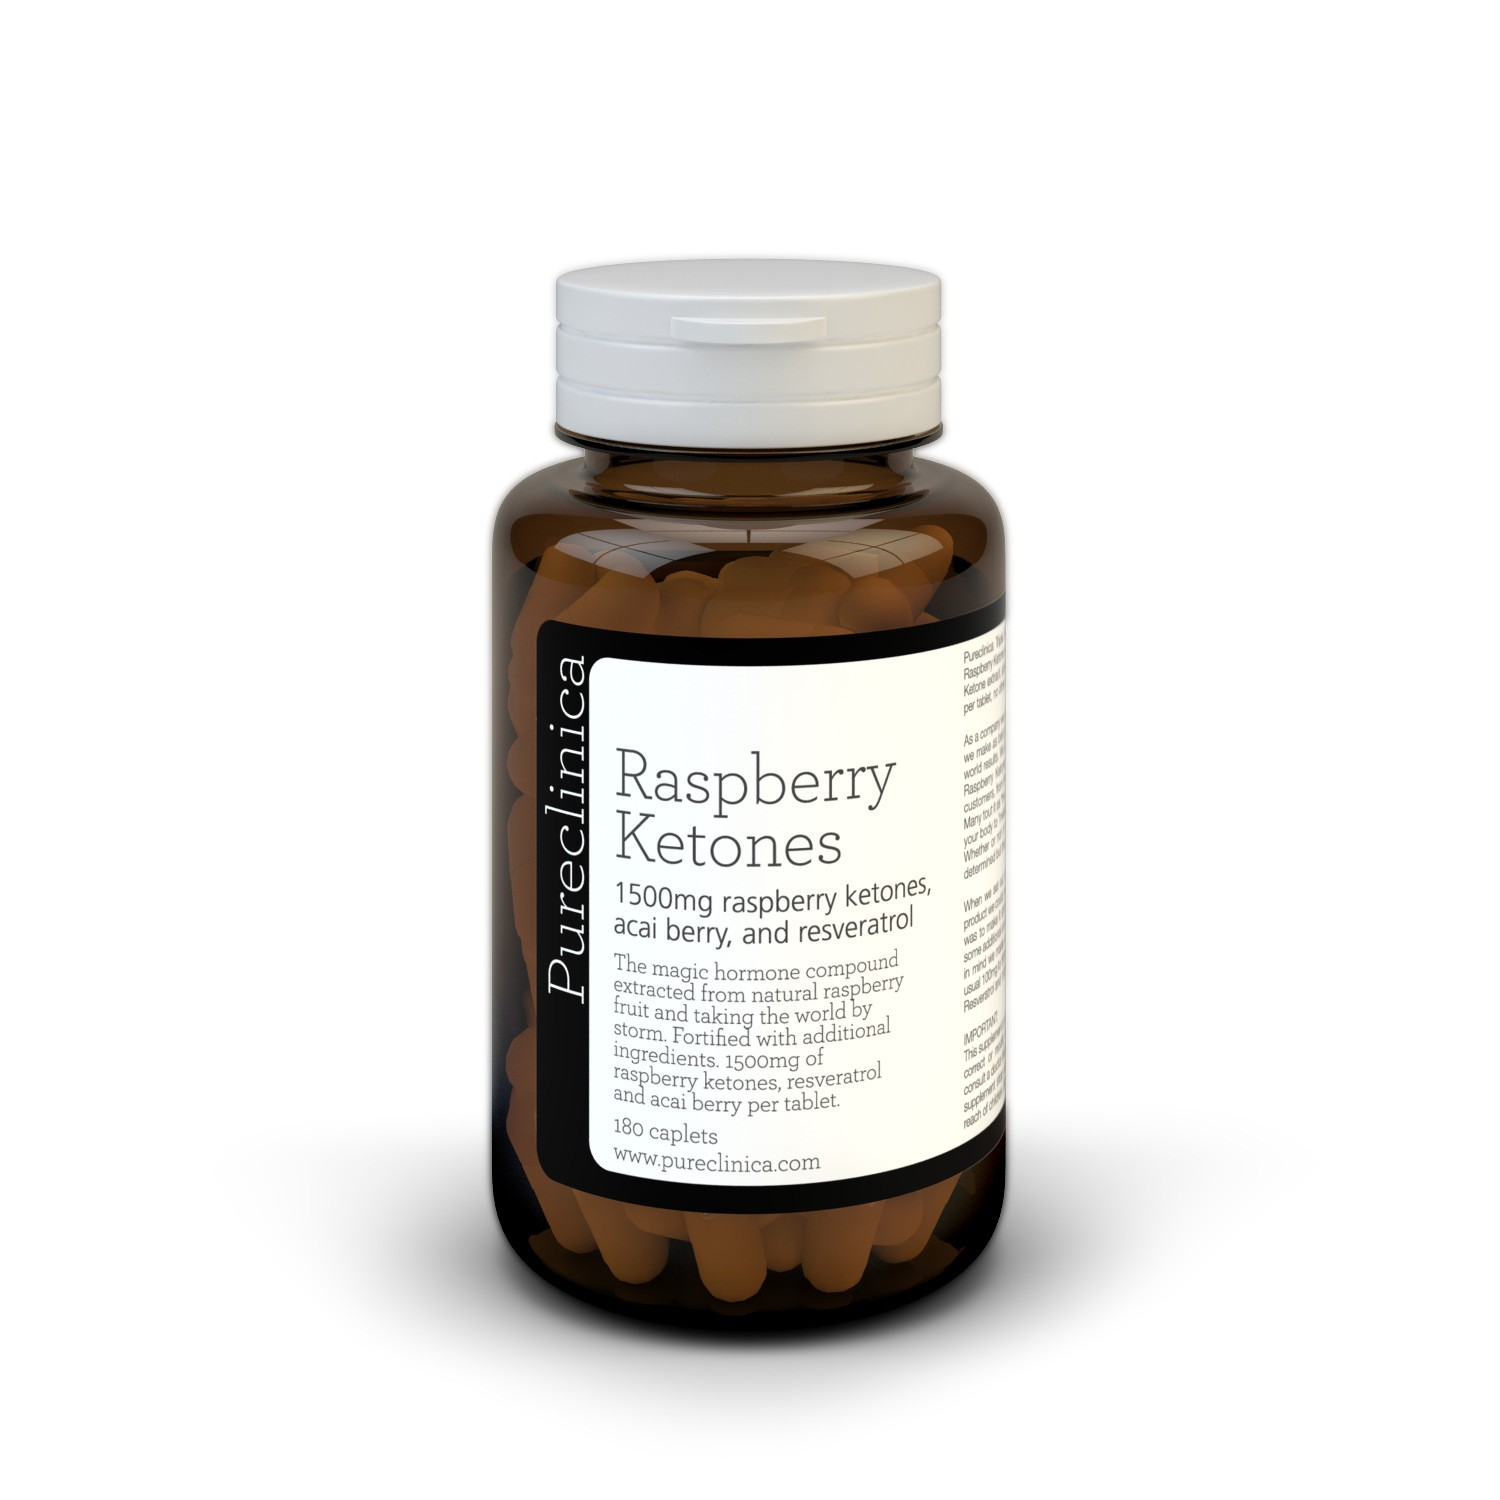 Triple Strength Raspberry Ketones